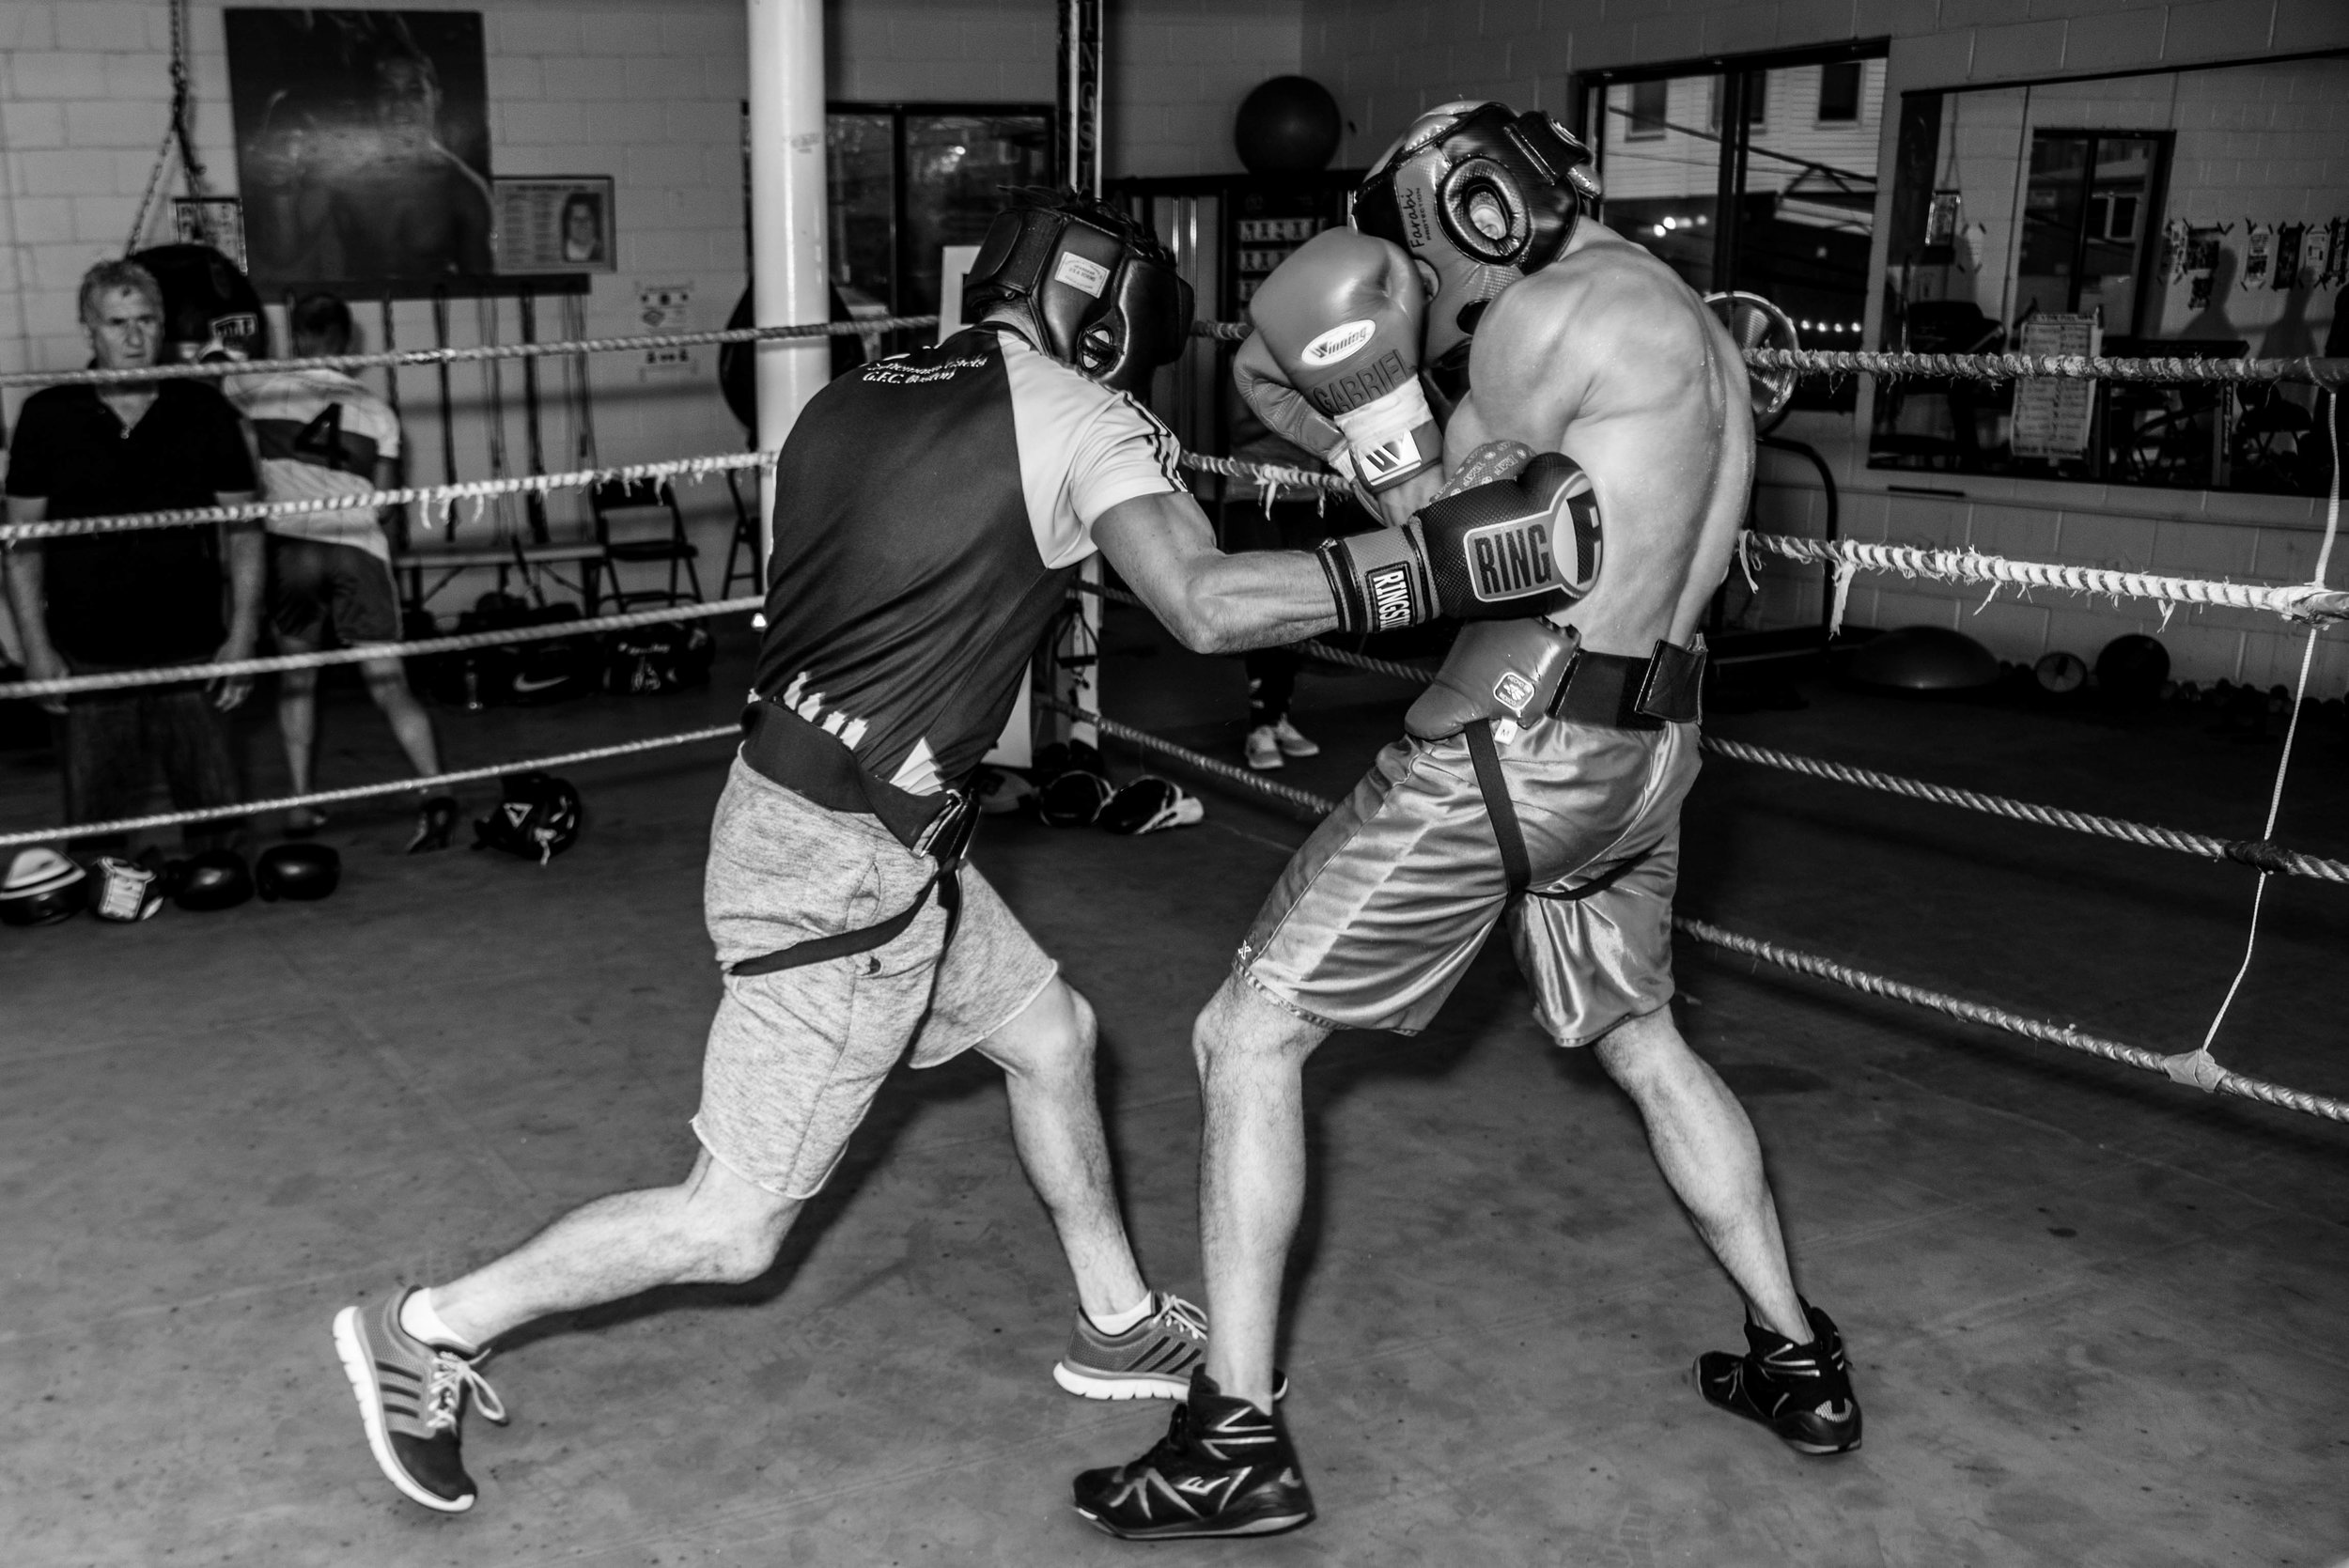 Paddy McGee sparring with Gabe DeLuca, at Grealish Boxing Club, Boston